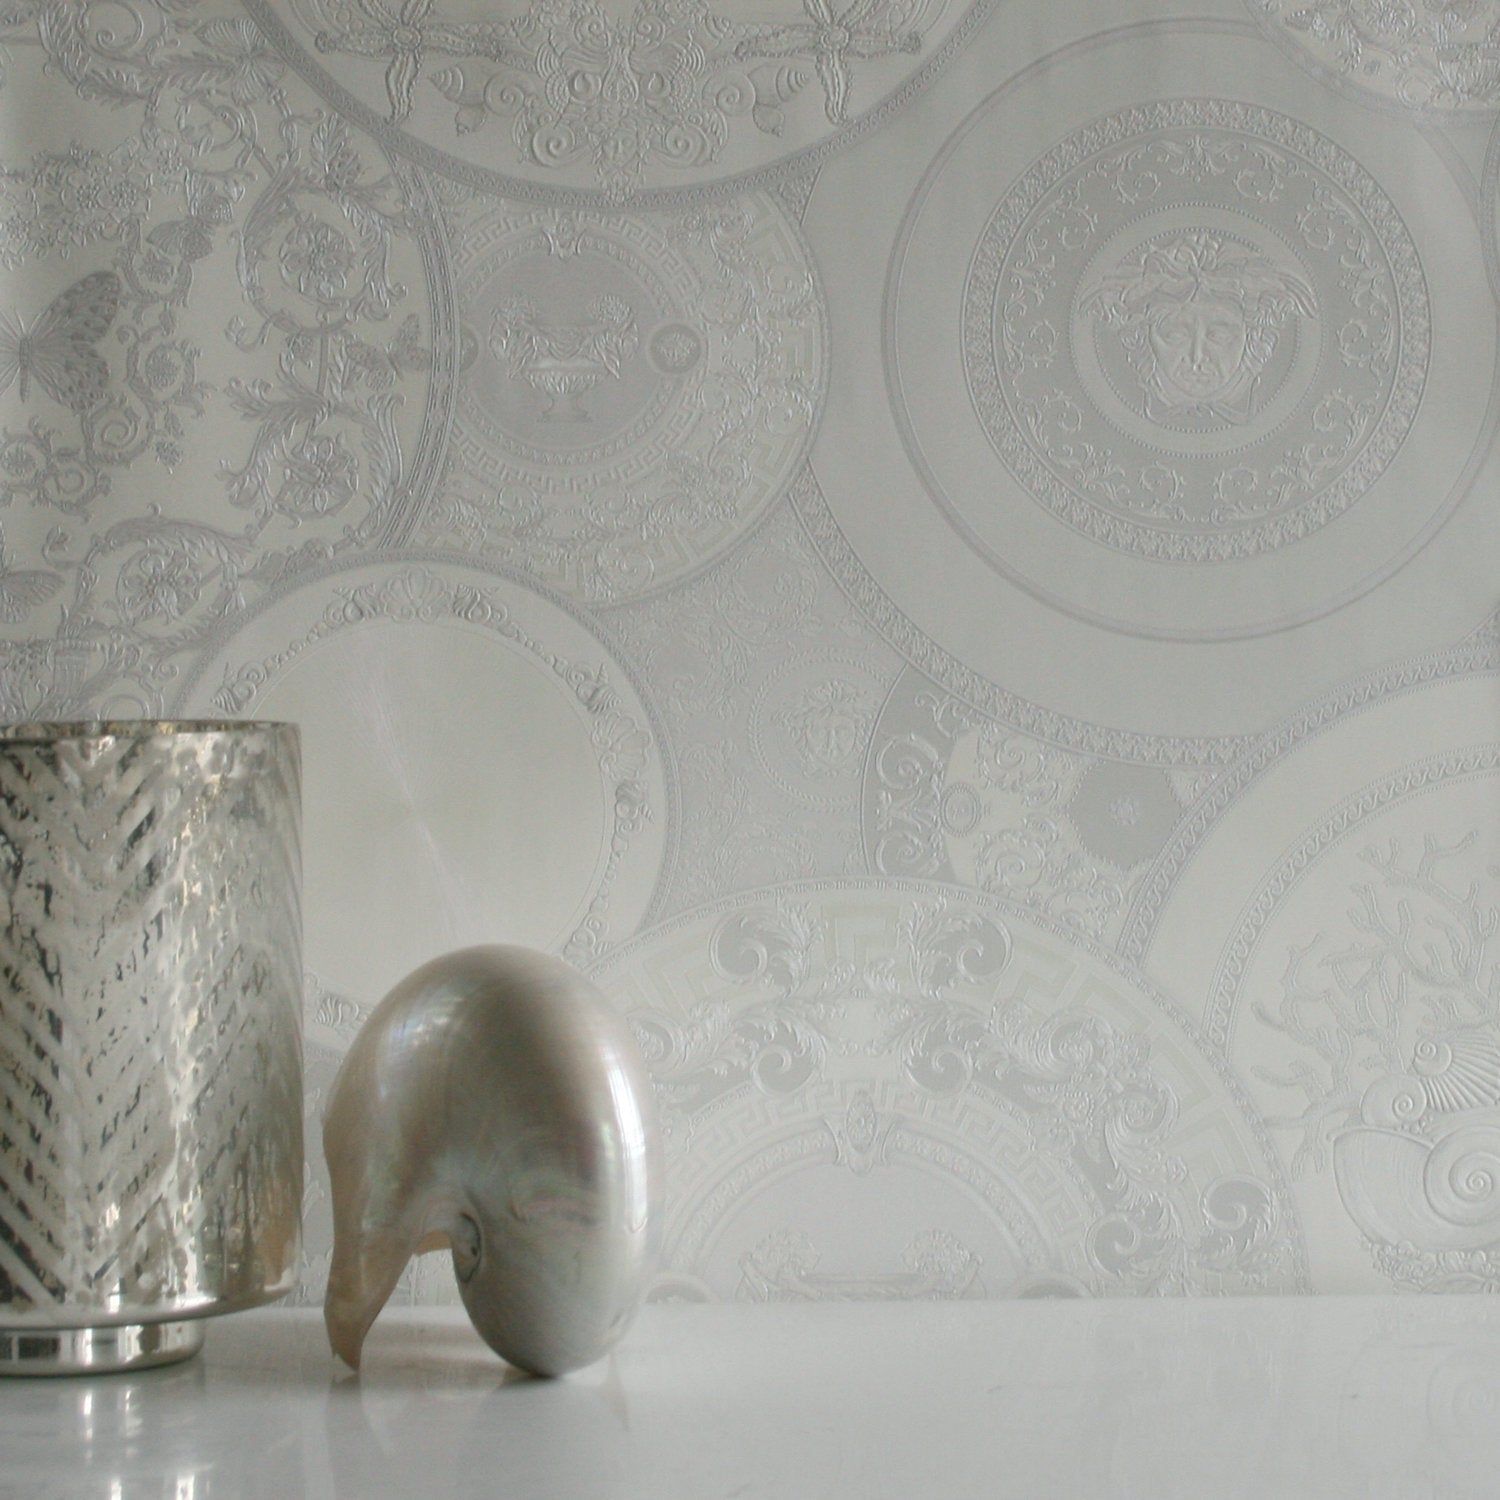 versace china| designer motif effect wallpaper in white & grey with